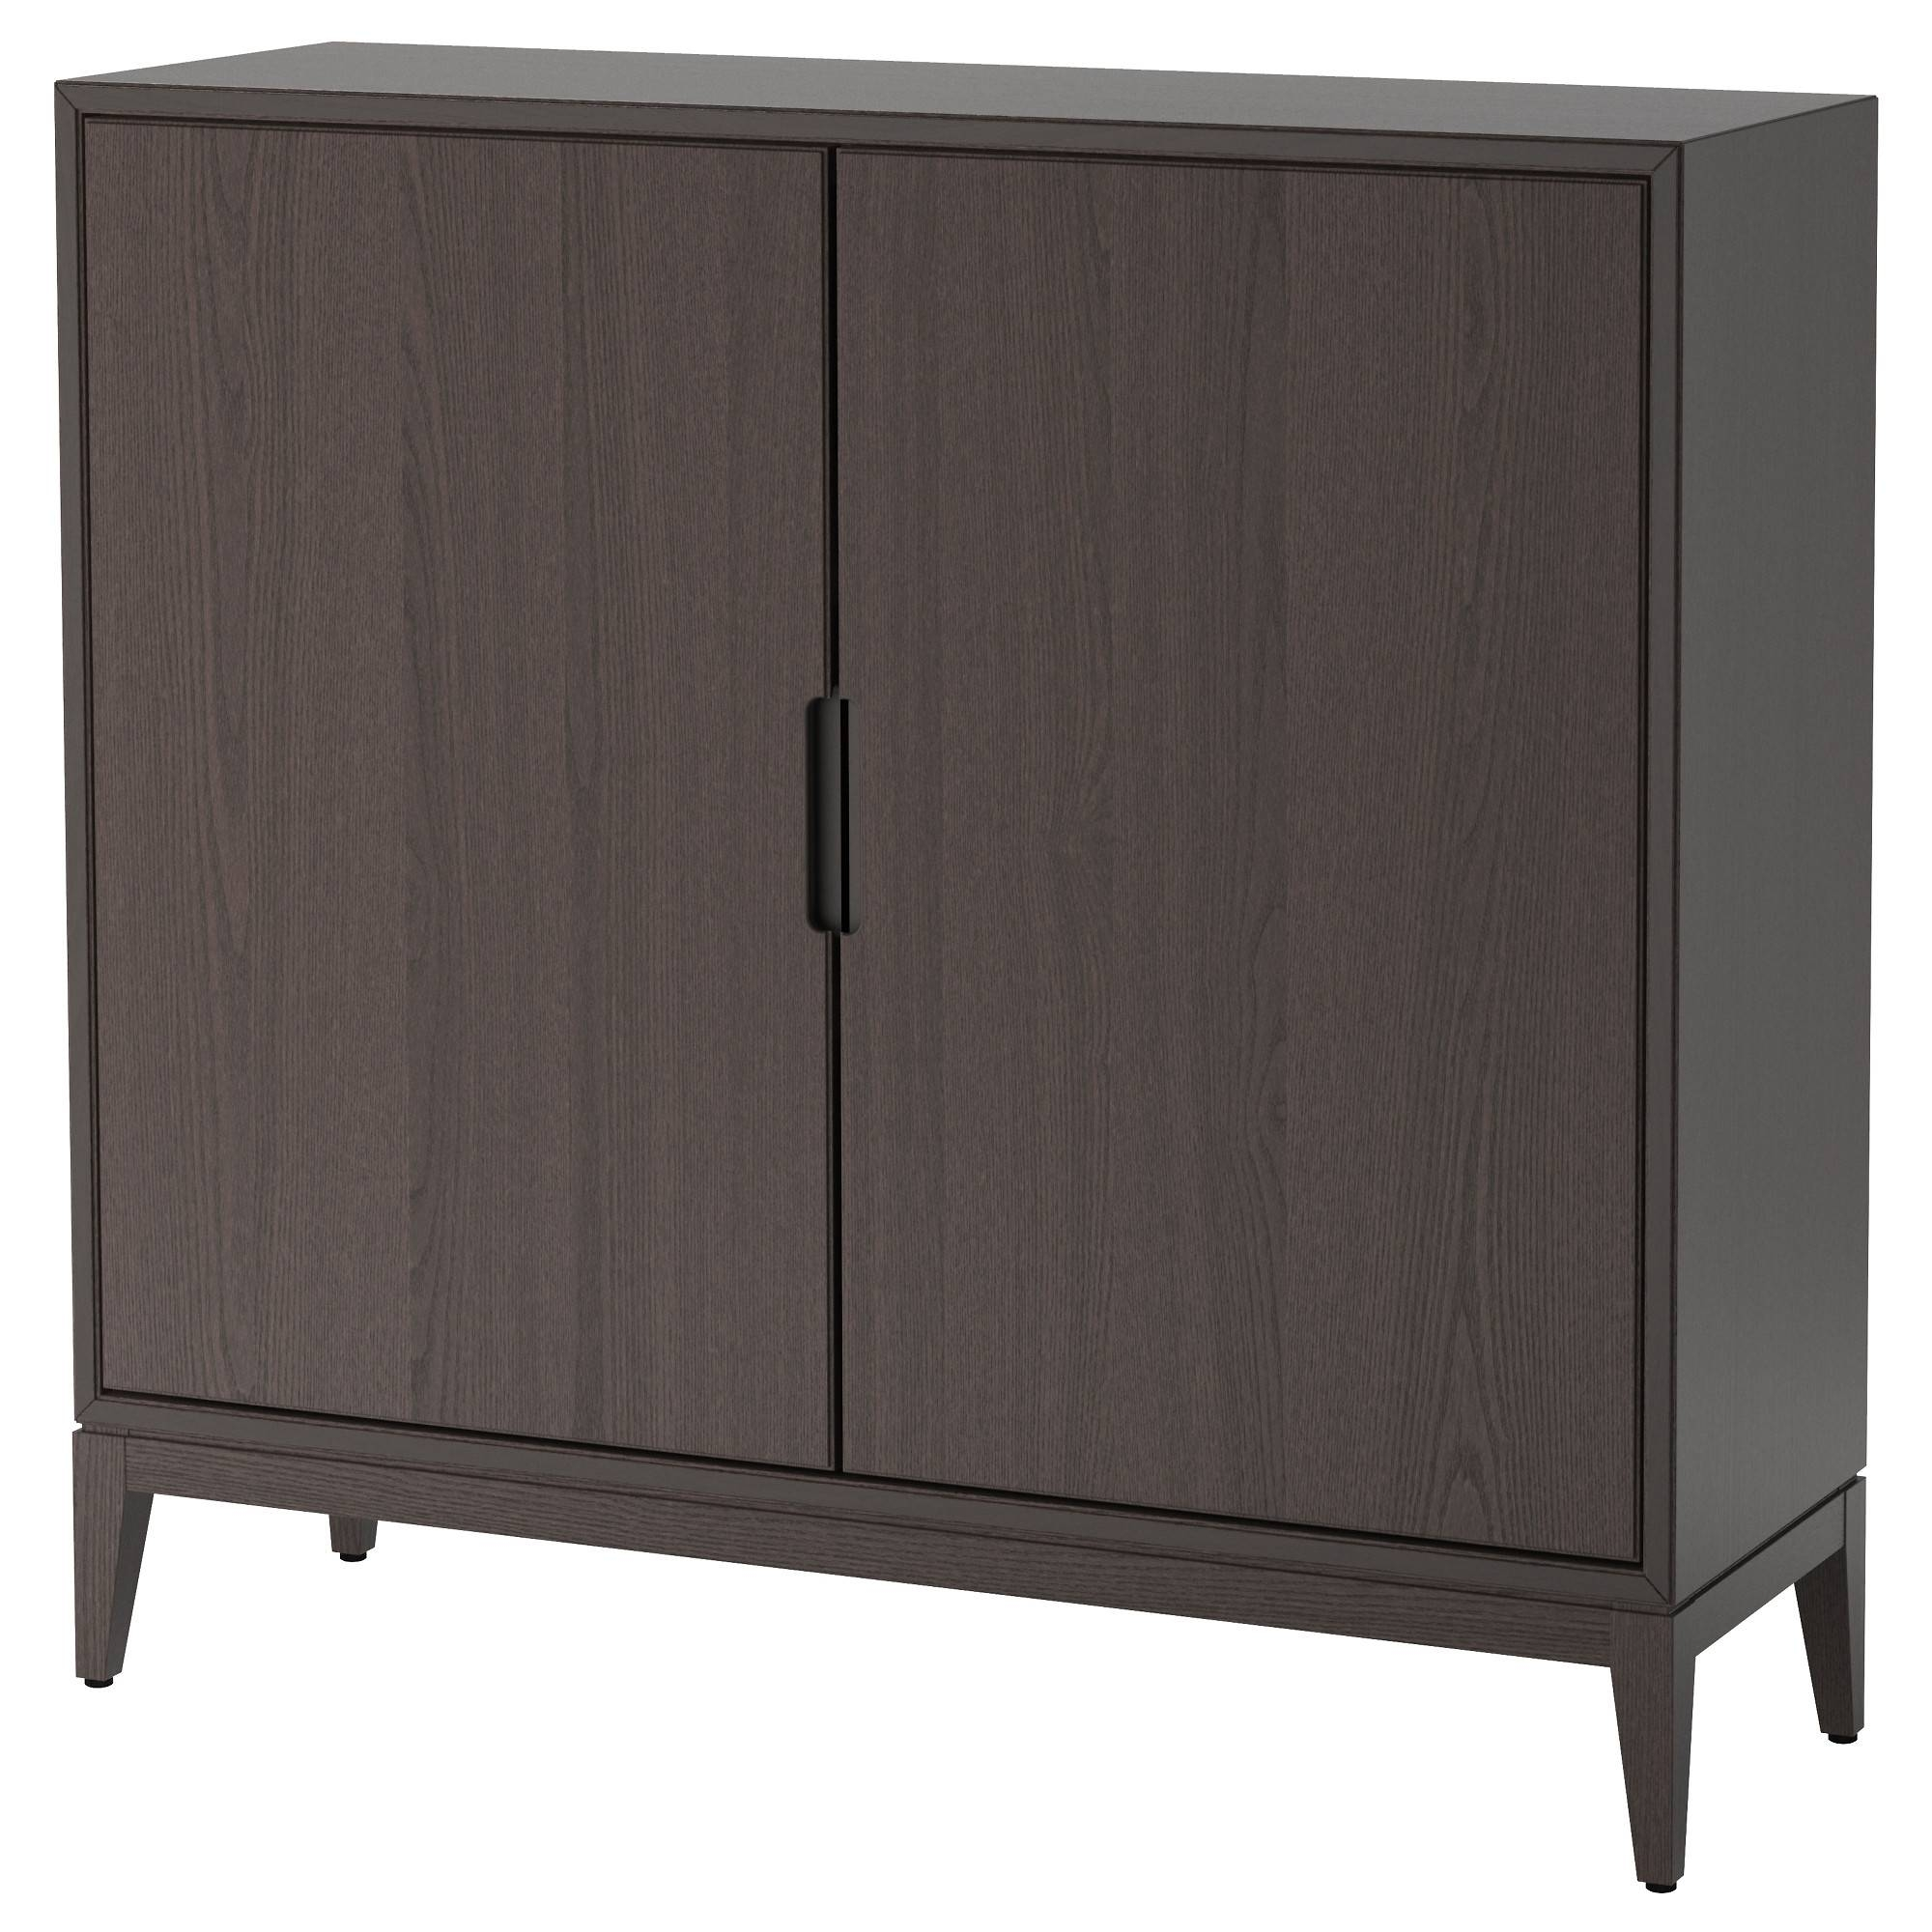 Cabinets & Sideboards - Ikea with regard to Black Wood Sideboards (Image 3 of 30)